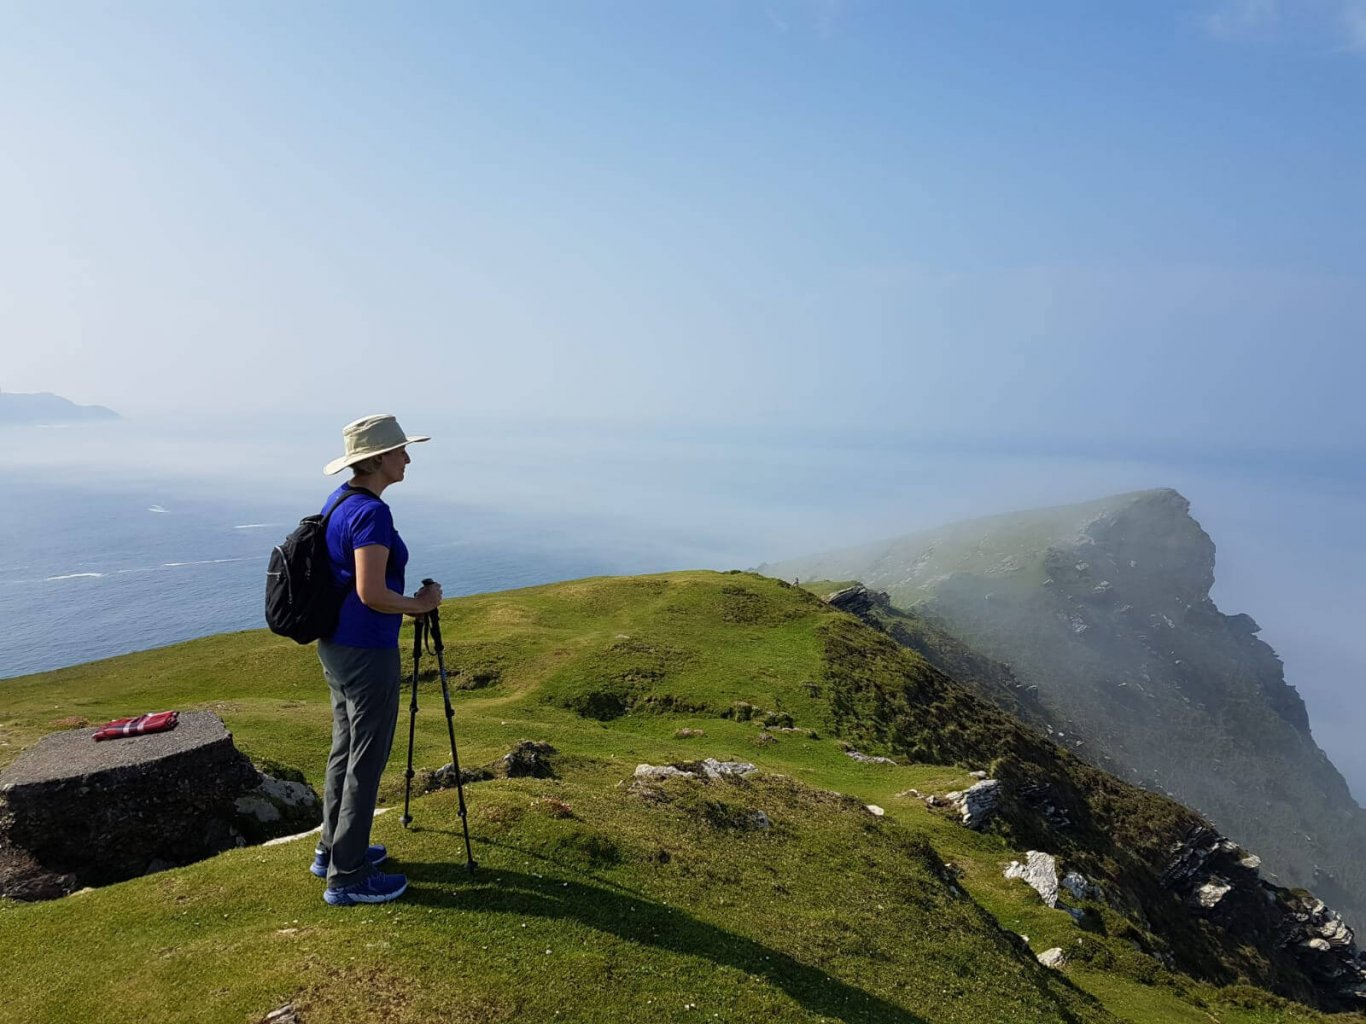 Female guest hiking in Ireland at Bray Head on Valentia Island in Kerry